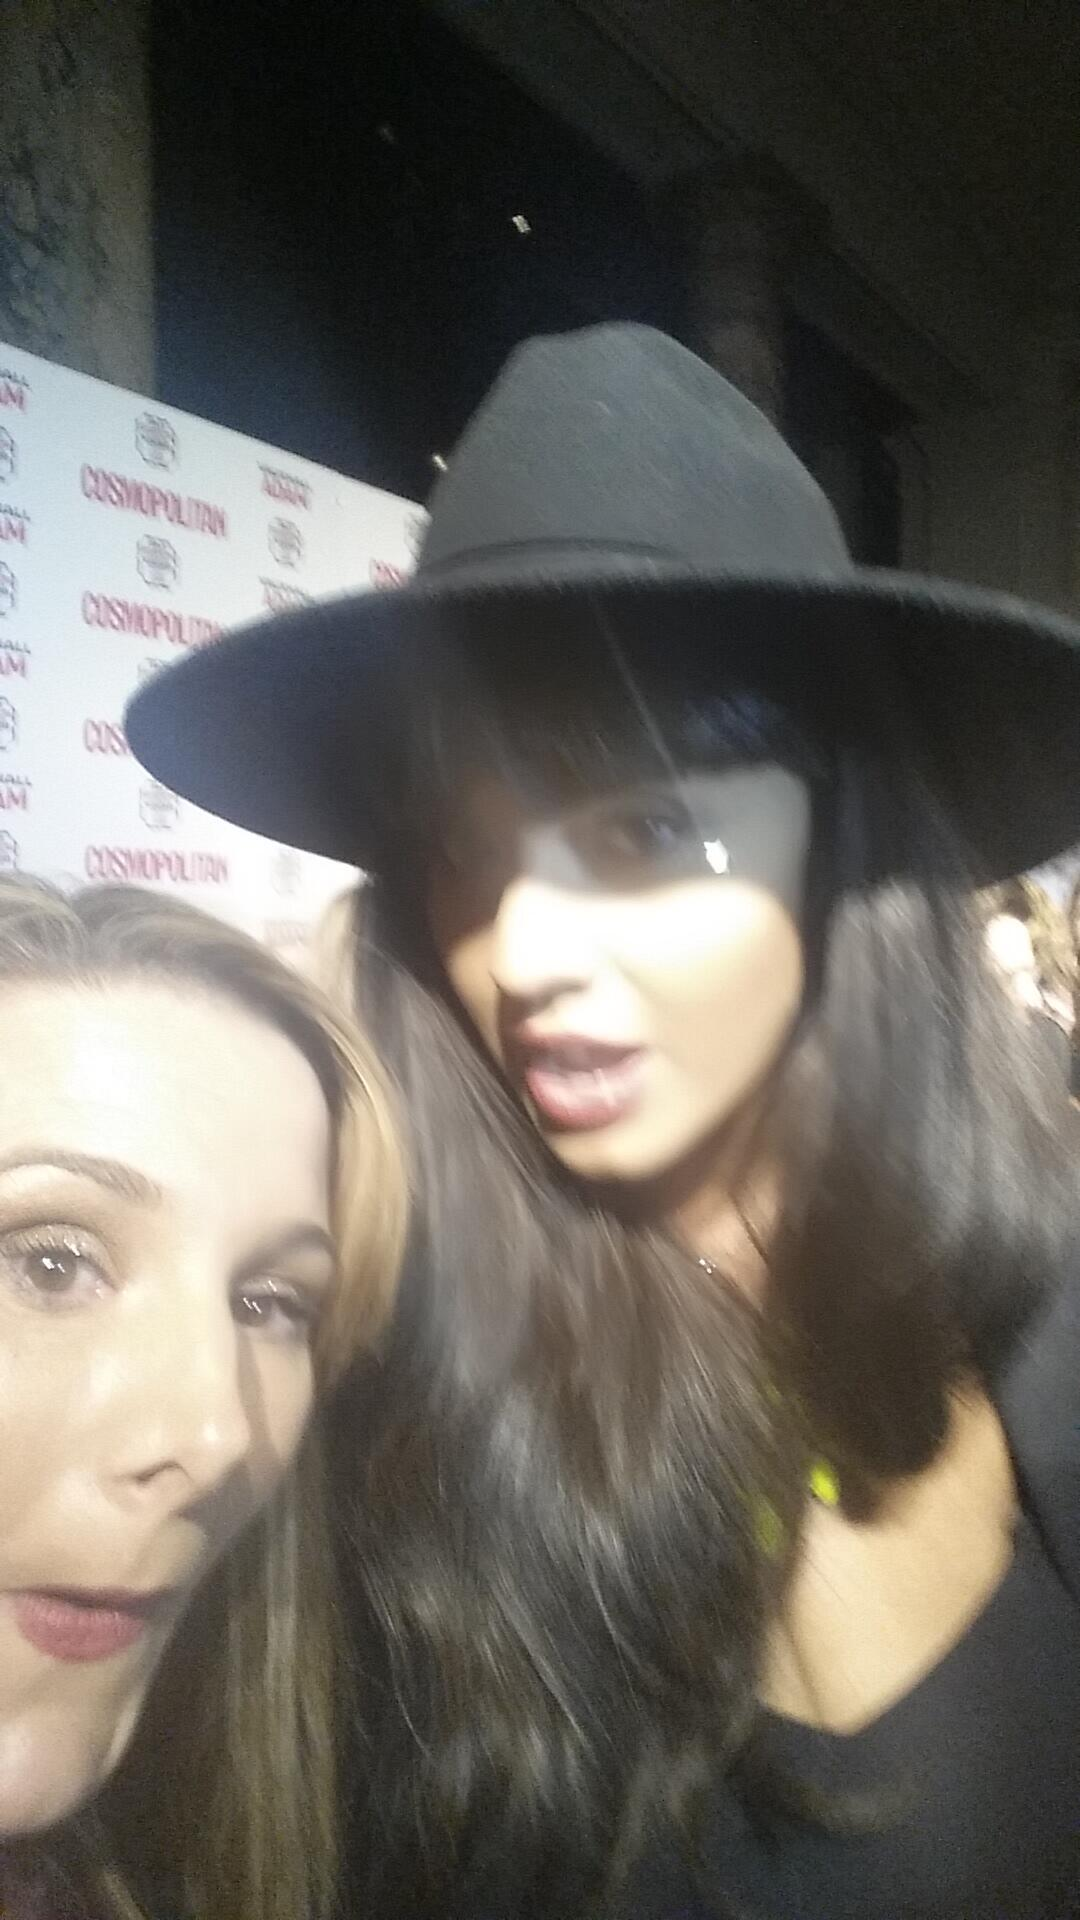 Me and jameela jamil x http://t.co/sw1lxIoMoB